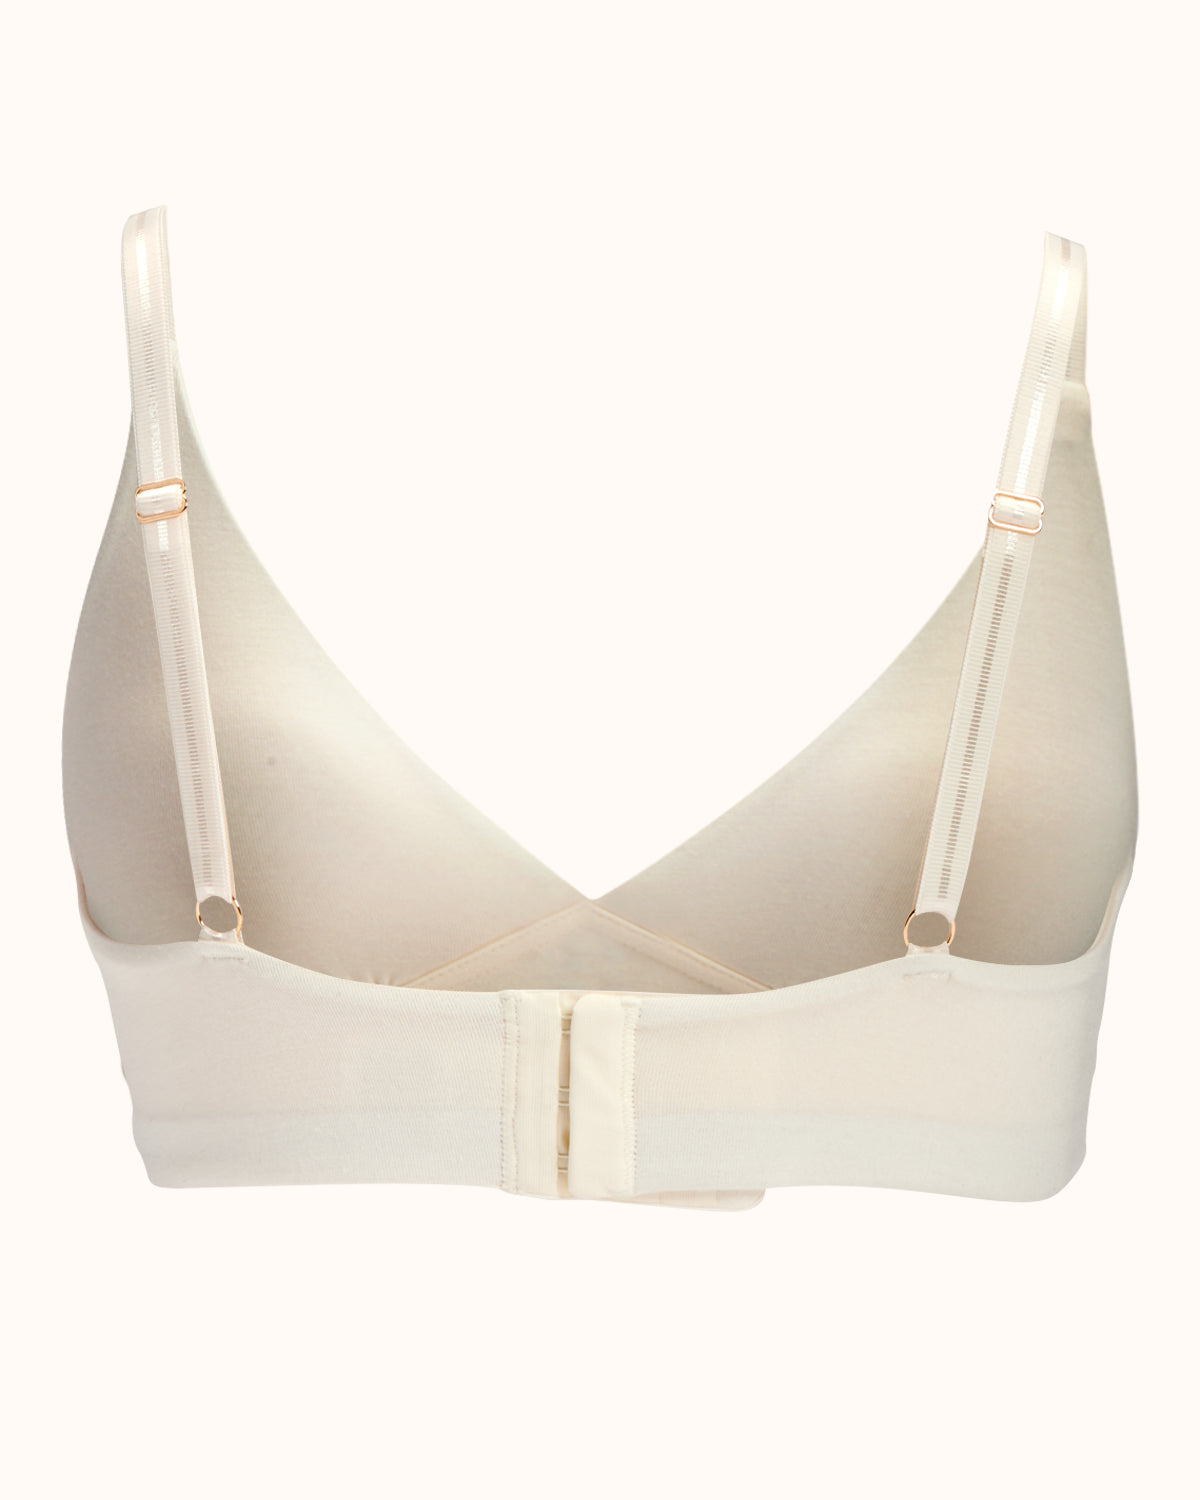 Molly Pocketed T-Shirt Bra